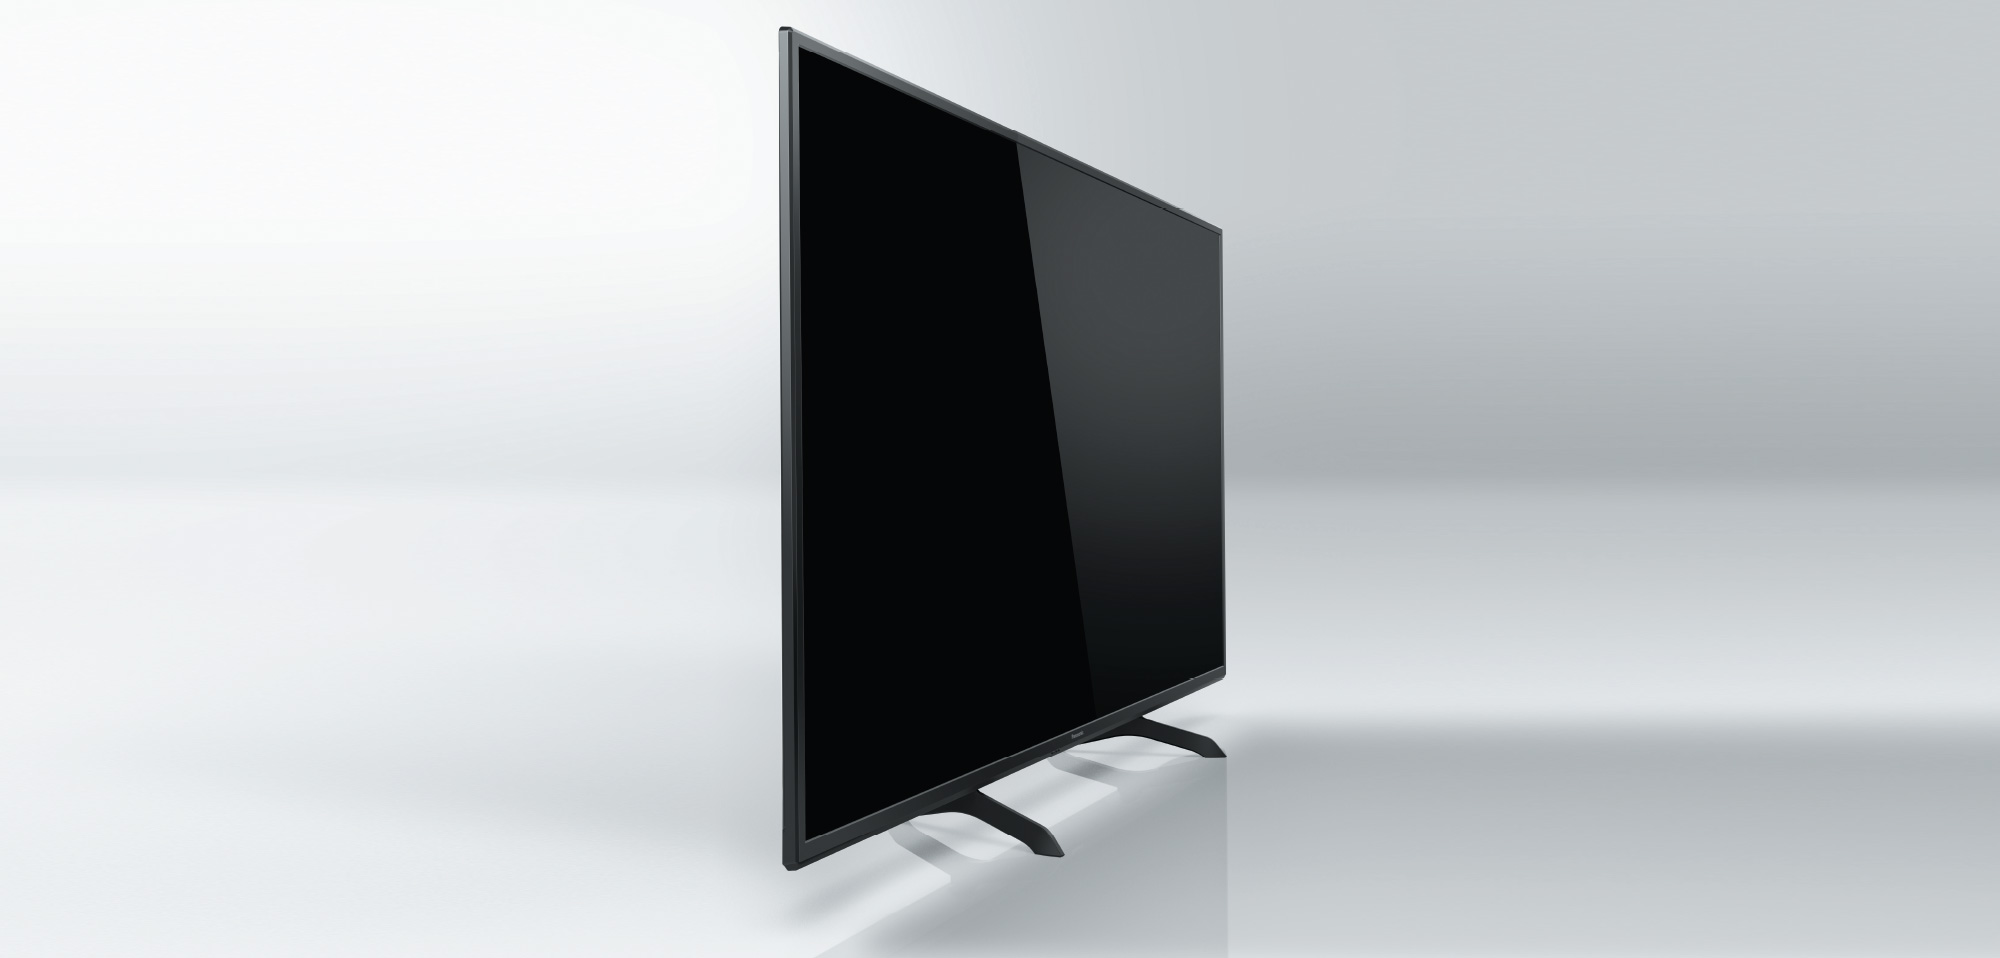 OLED - FS500, SLIM DESIGN, A big screen in a slim design. The minimalist style complements interiors beautifully.